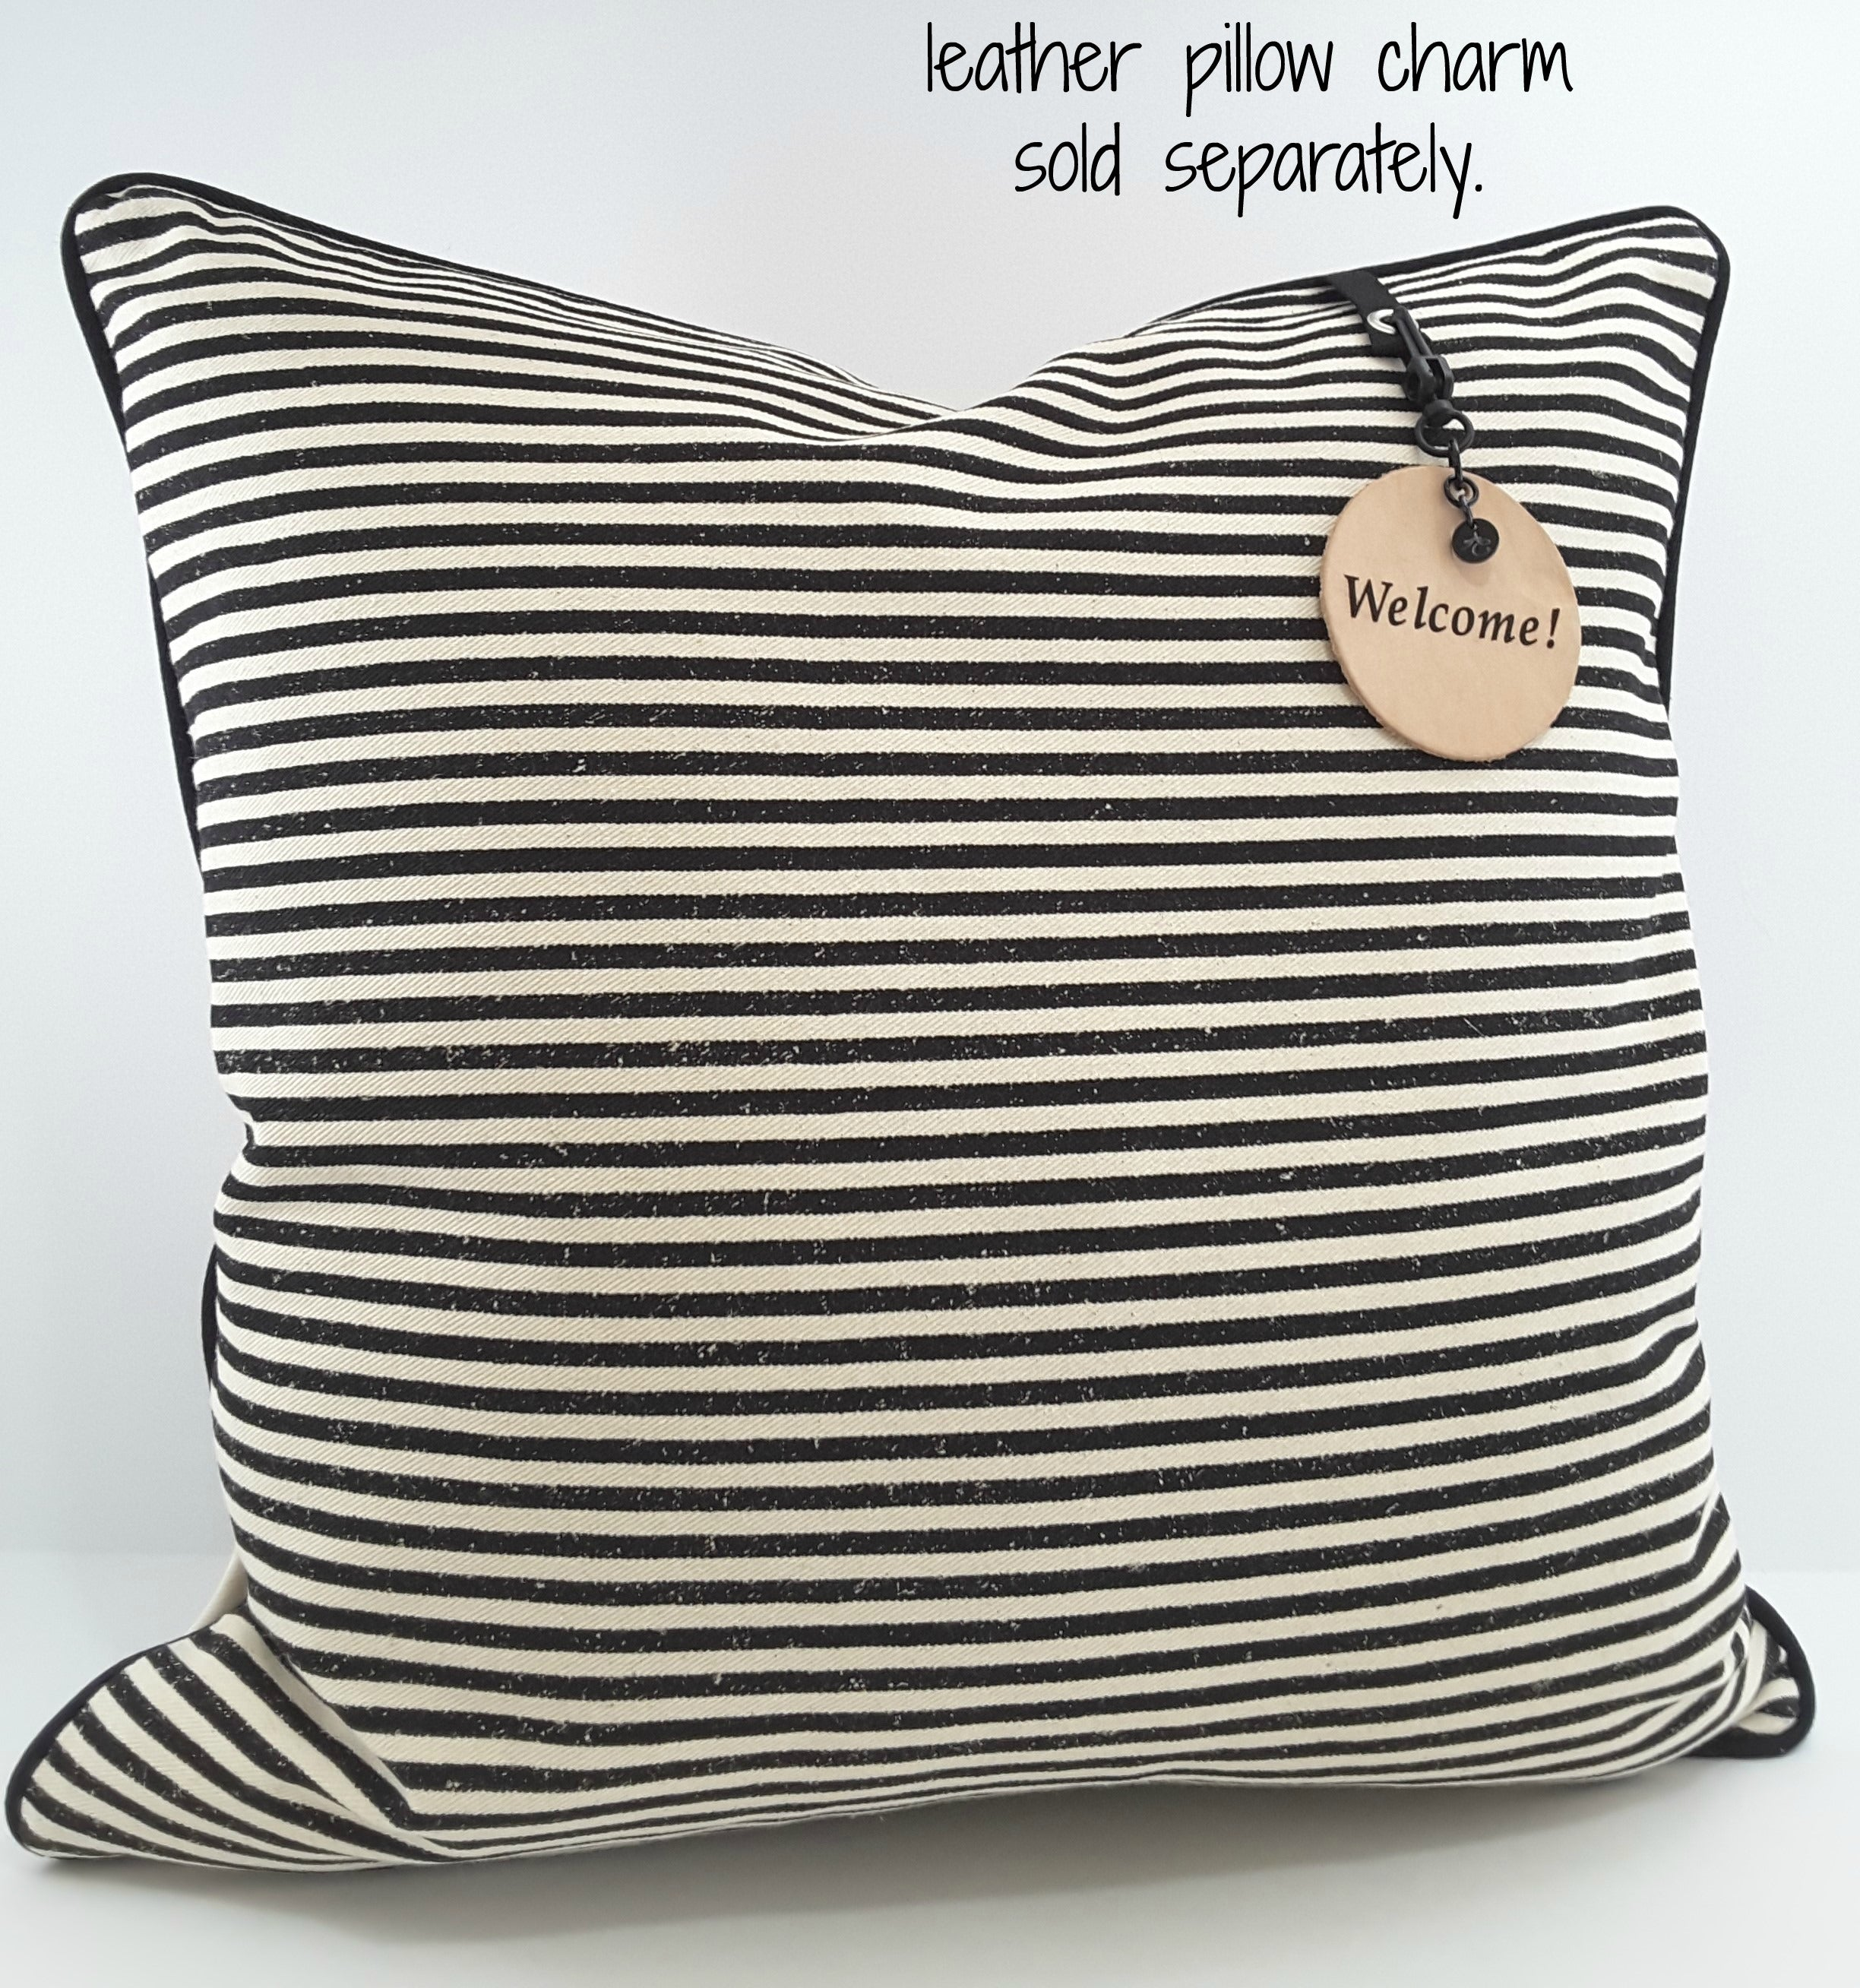 CIRCULAR LEATHER PILLOW TAG on stripe pillow